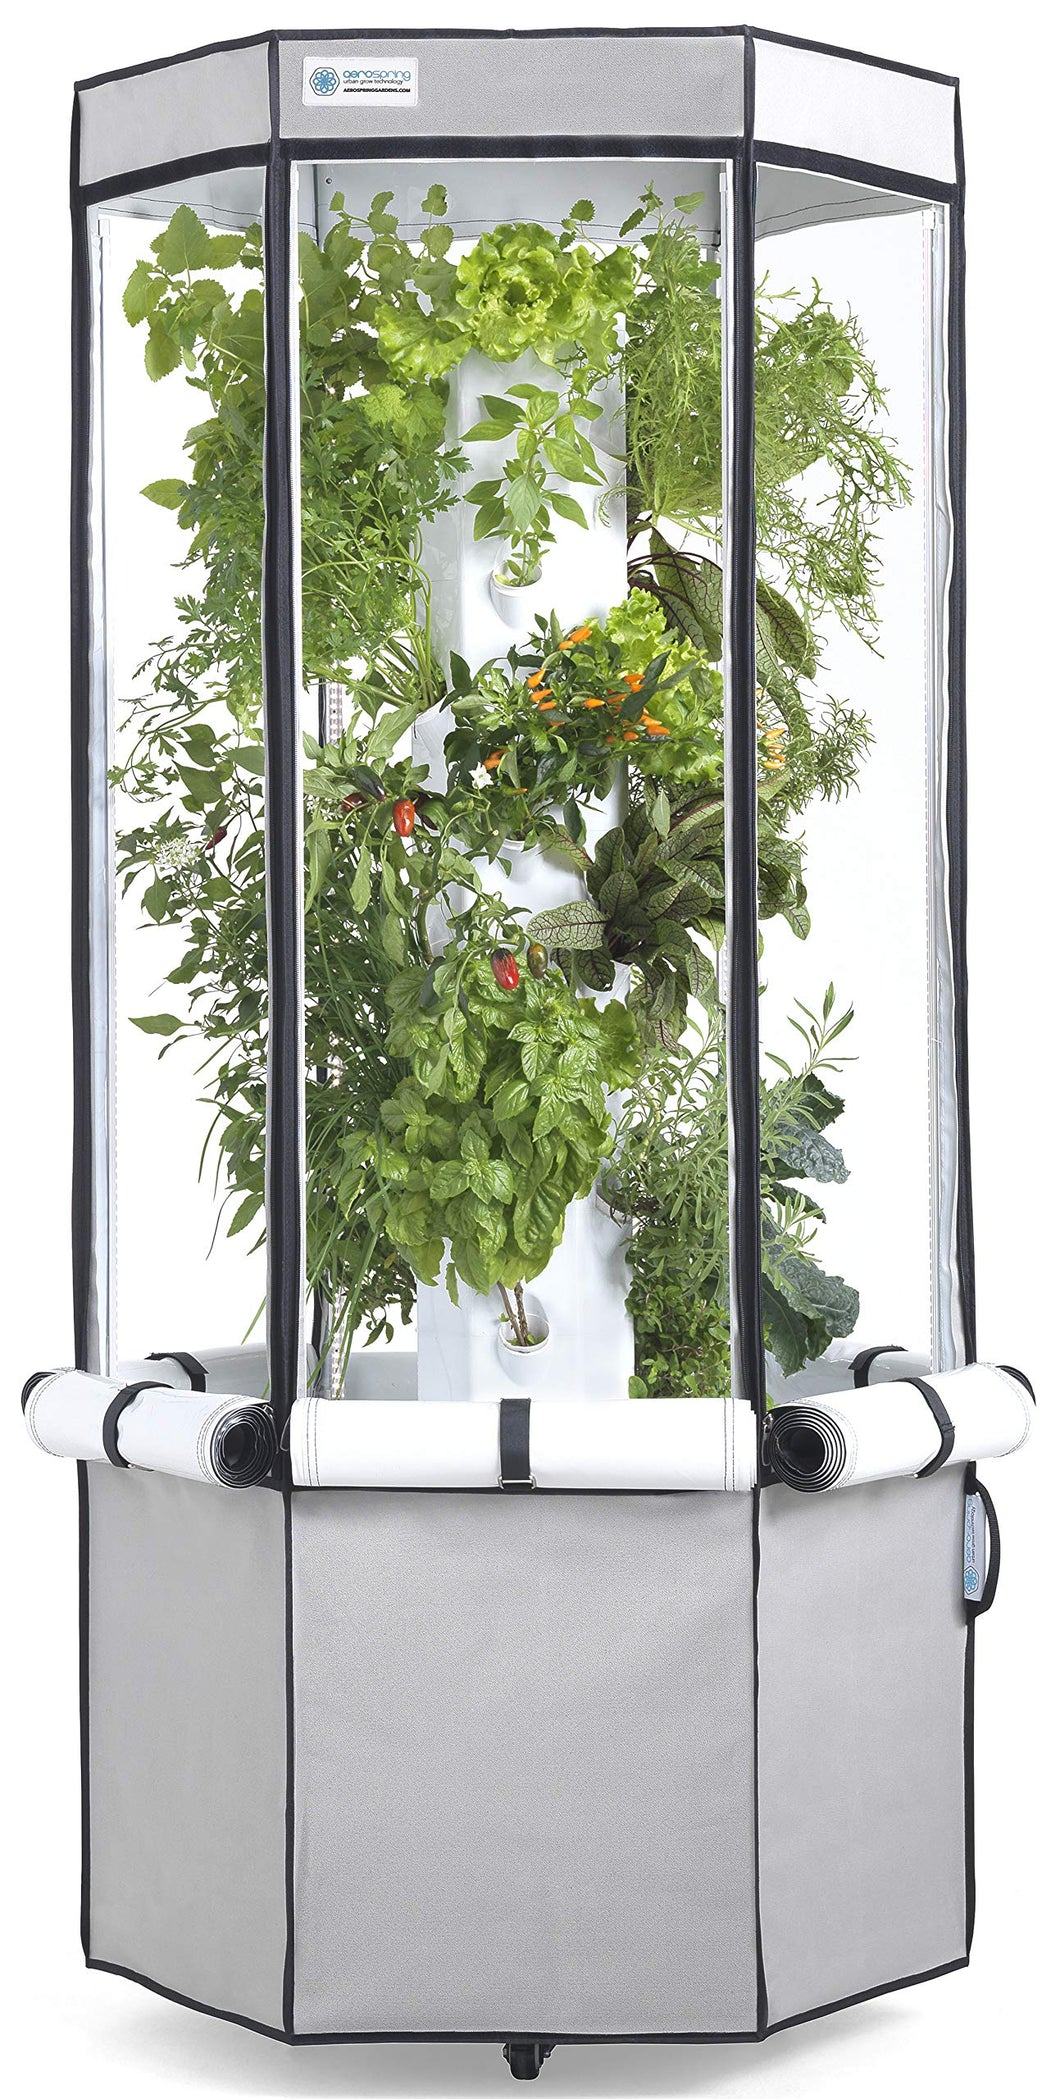 Vertical Hydroponic Grow Kit: Tower, Tent, LEDs, and Fan - Aerospring Indoor Herb & Vegetable Garden - 27 Plant Grow System - Grey